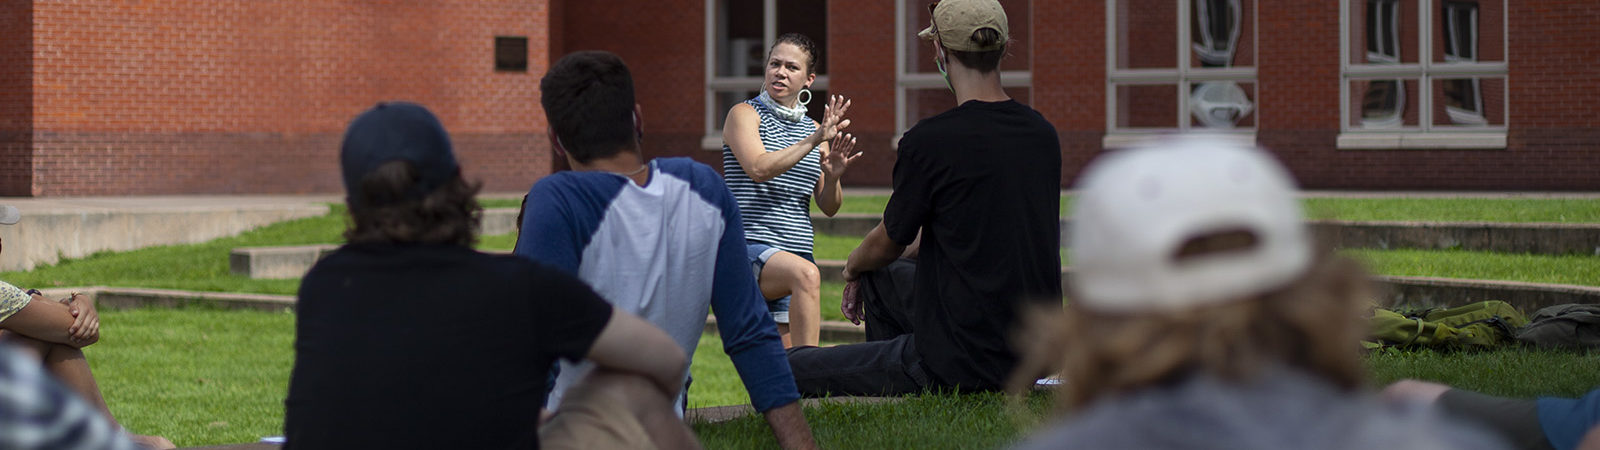 Northland College Diversity Coordinator Ruth deJesus teaches a session outdoors.